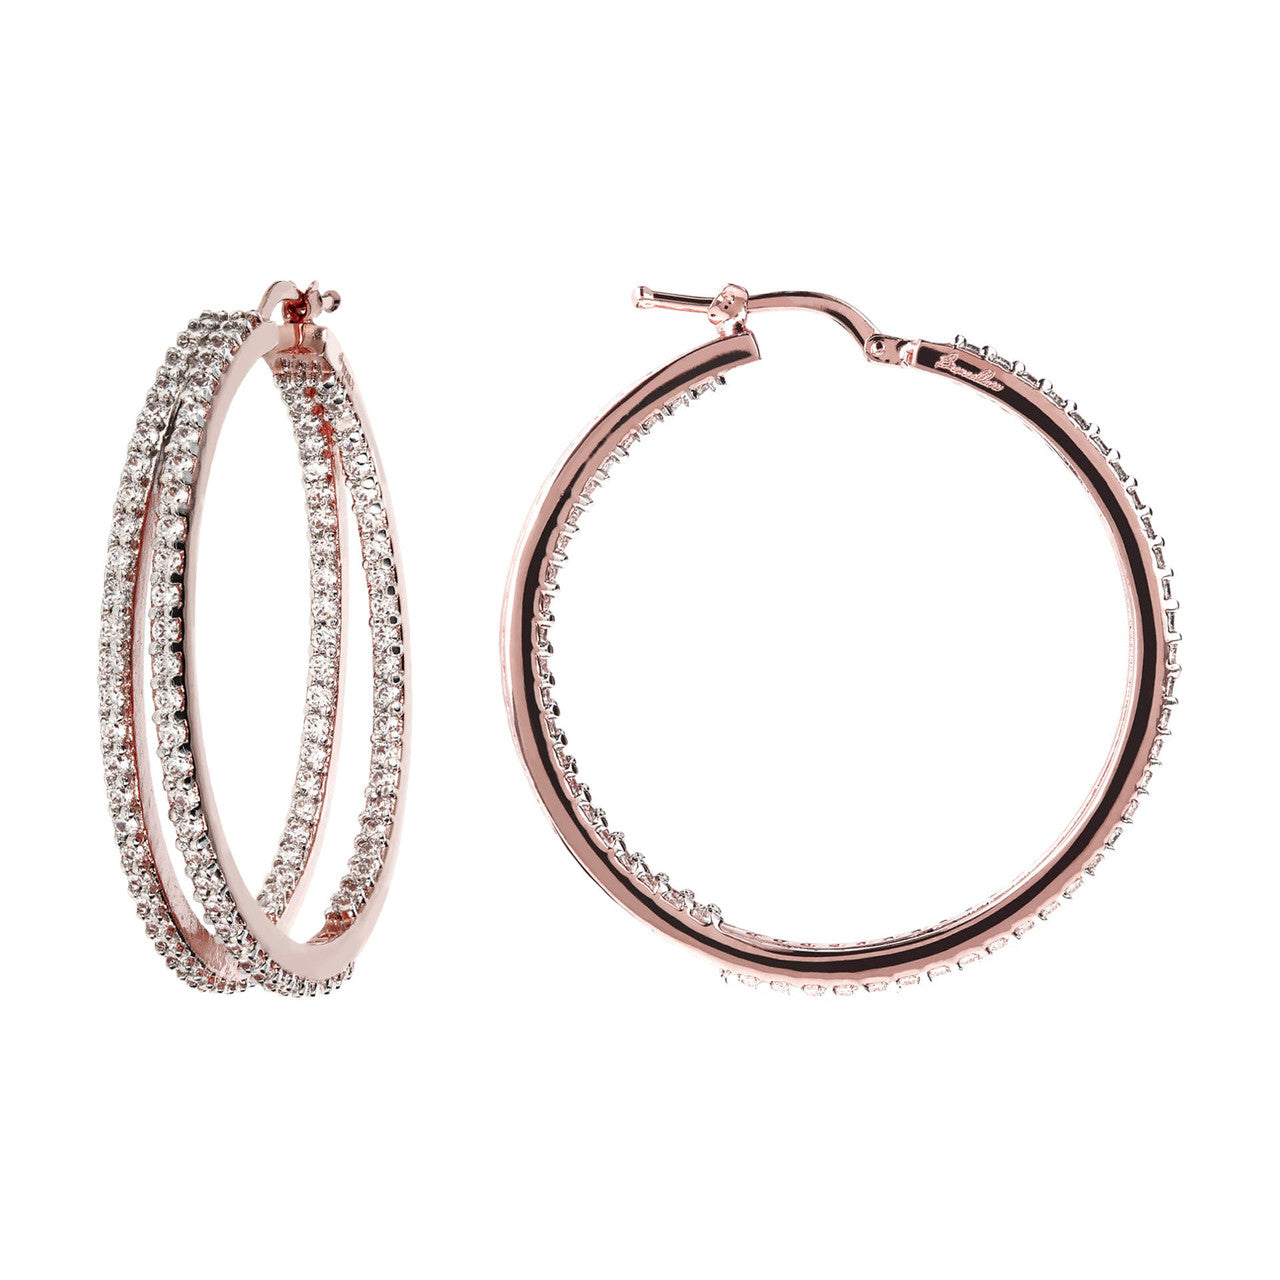 Bronzallure | Earrings | Big Duo Hoops